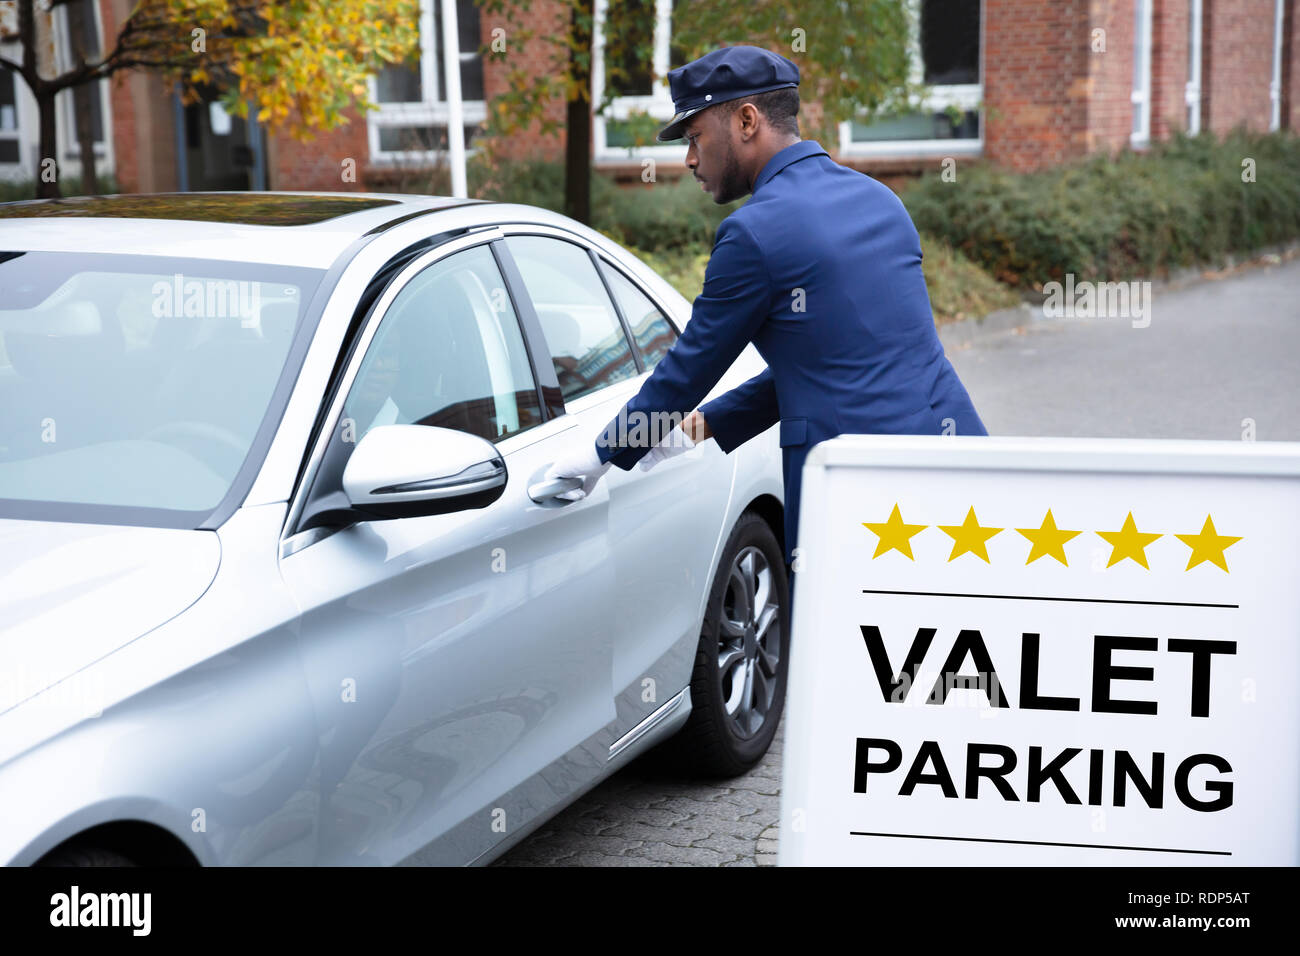 Happy Male Valet Opening Car Door Near Valet Parking Sign - Stock Image